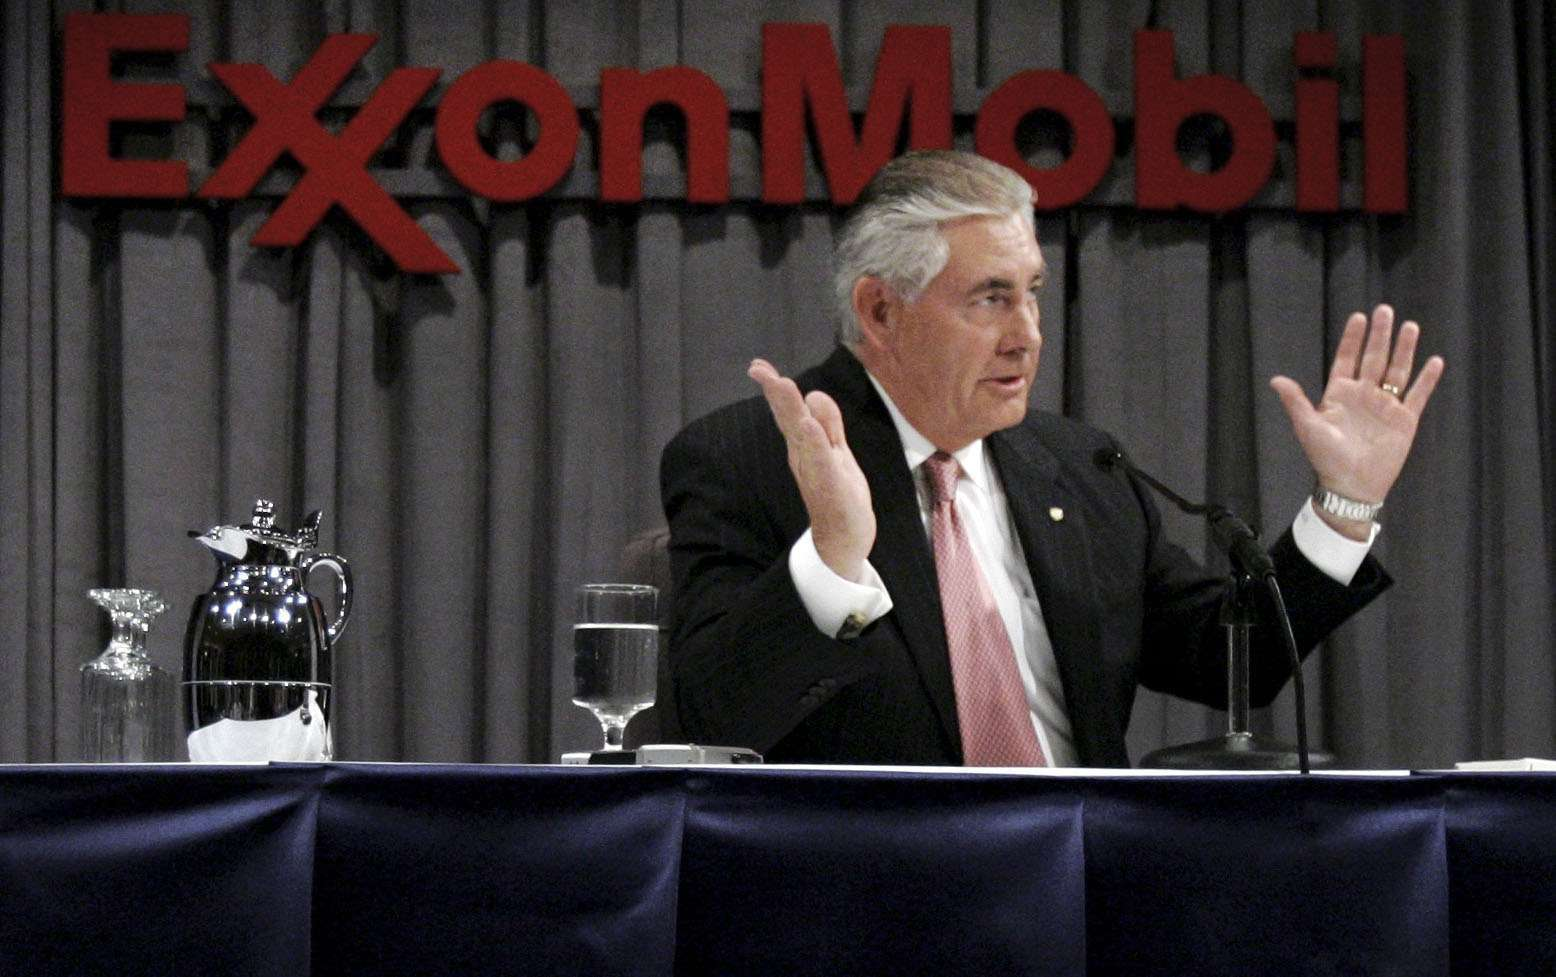 Why state secretary Tillerson used alias Wayne Tracker while a CEO at Exxon